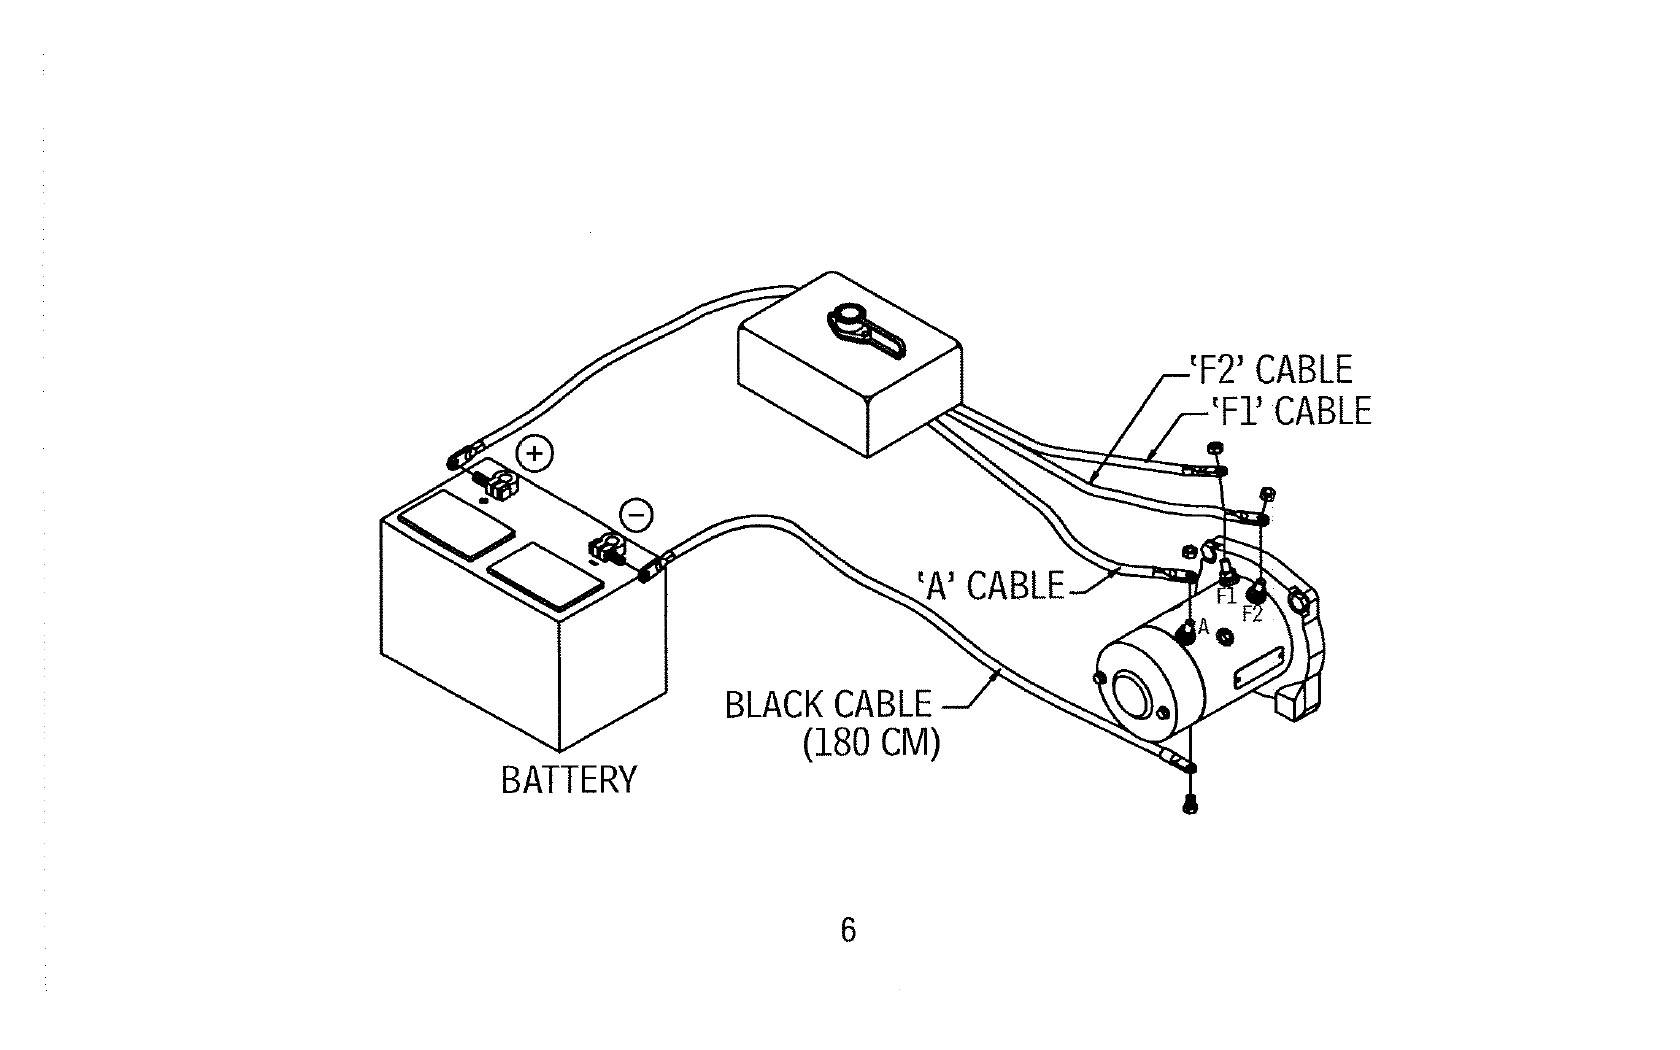 warn_cables warn m8000 winch wiring diagram solenoid switch wiring diagram warn winch m8000 wiring diagram at crackthecode.co